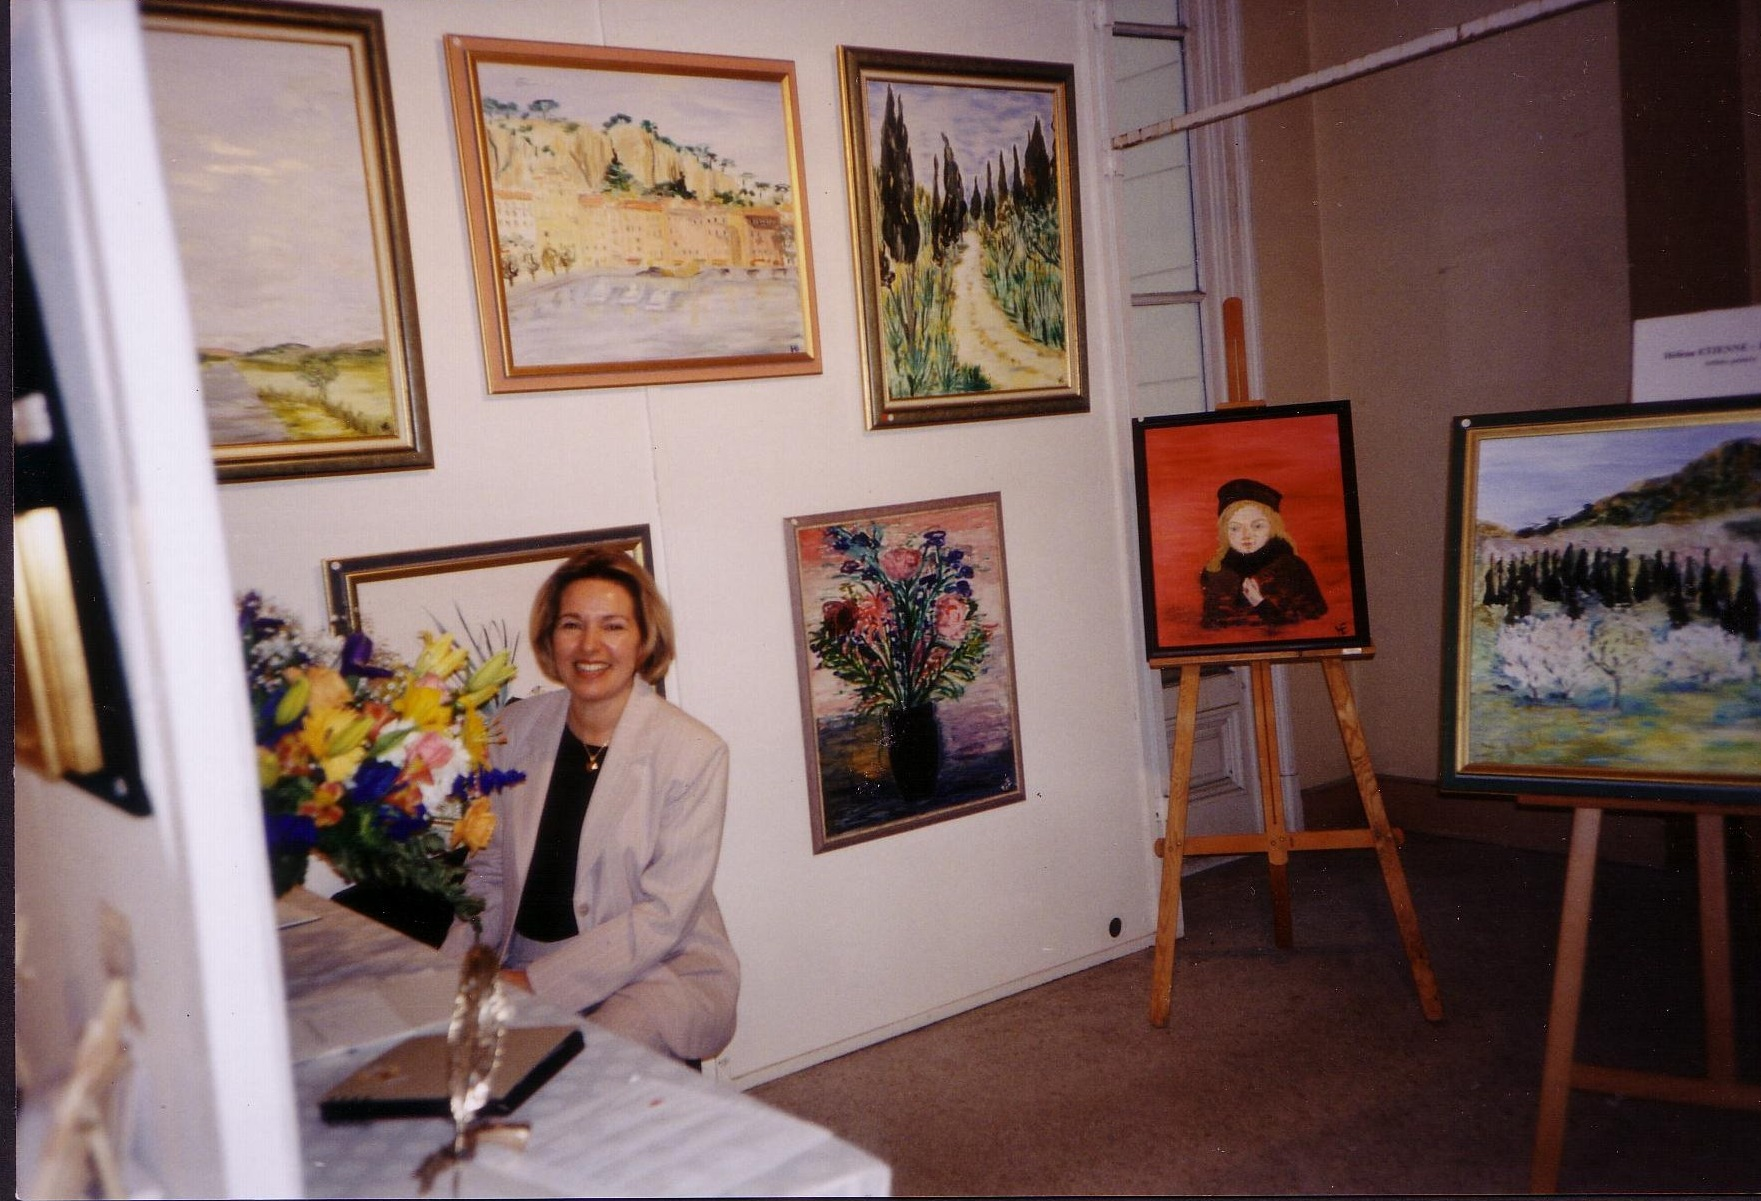 Exposition au salon de la femme menton 1997 le site d for Salon exposition